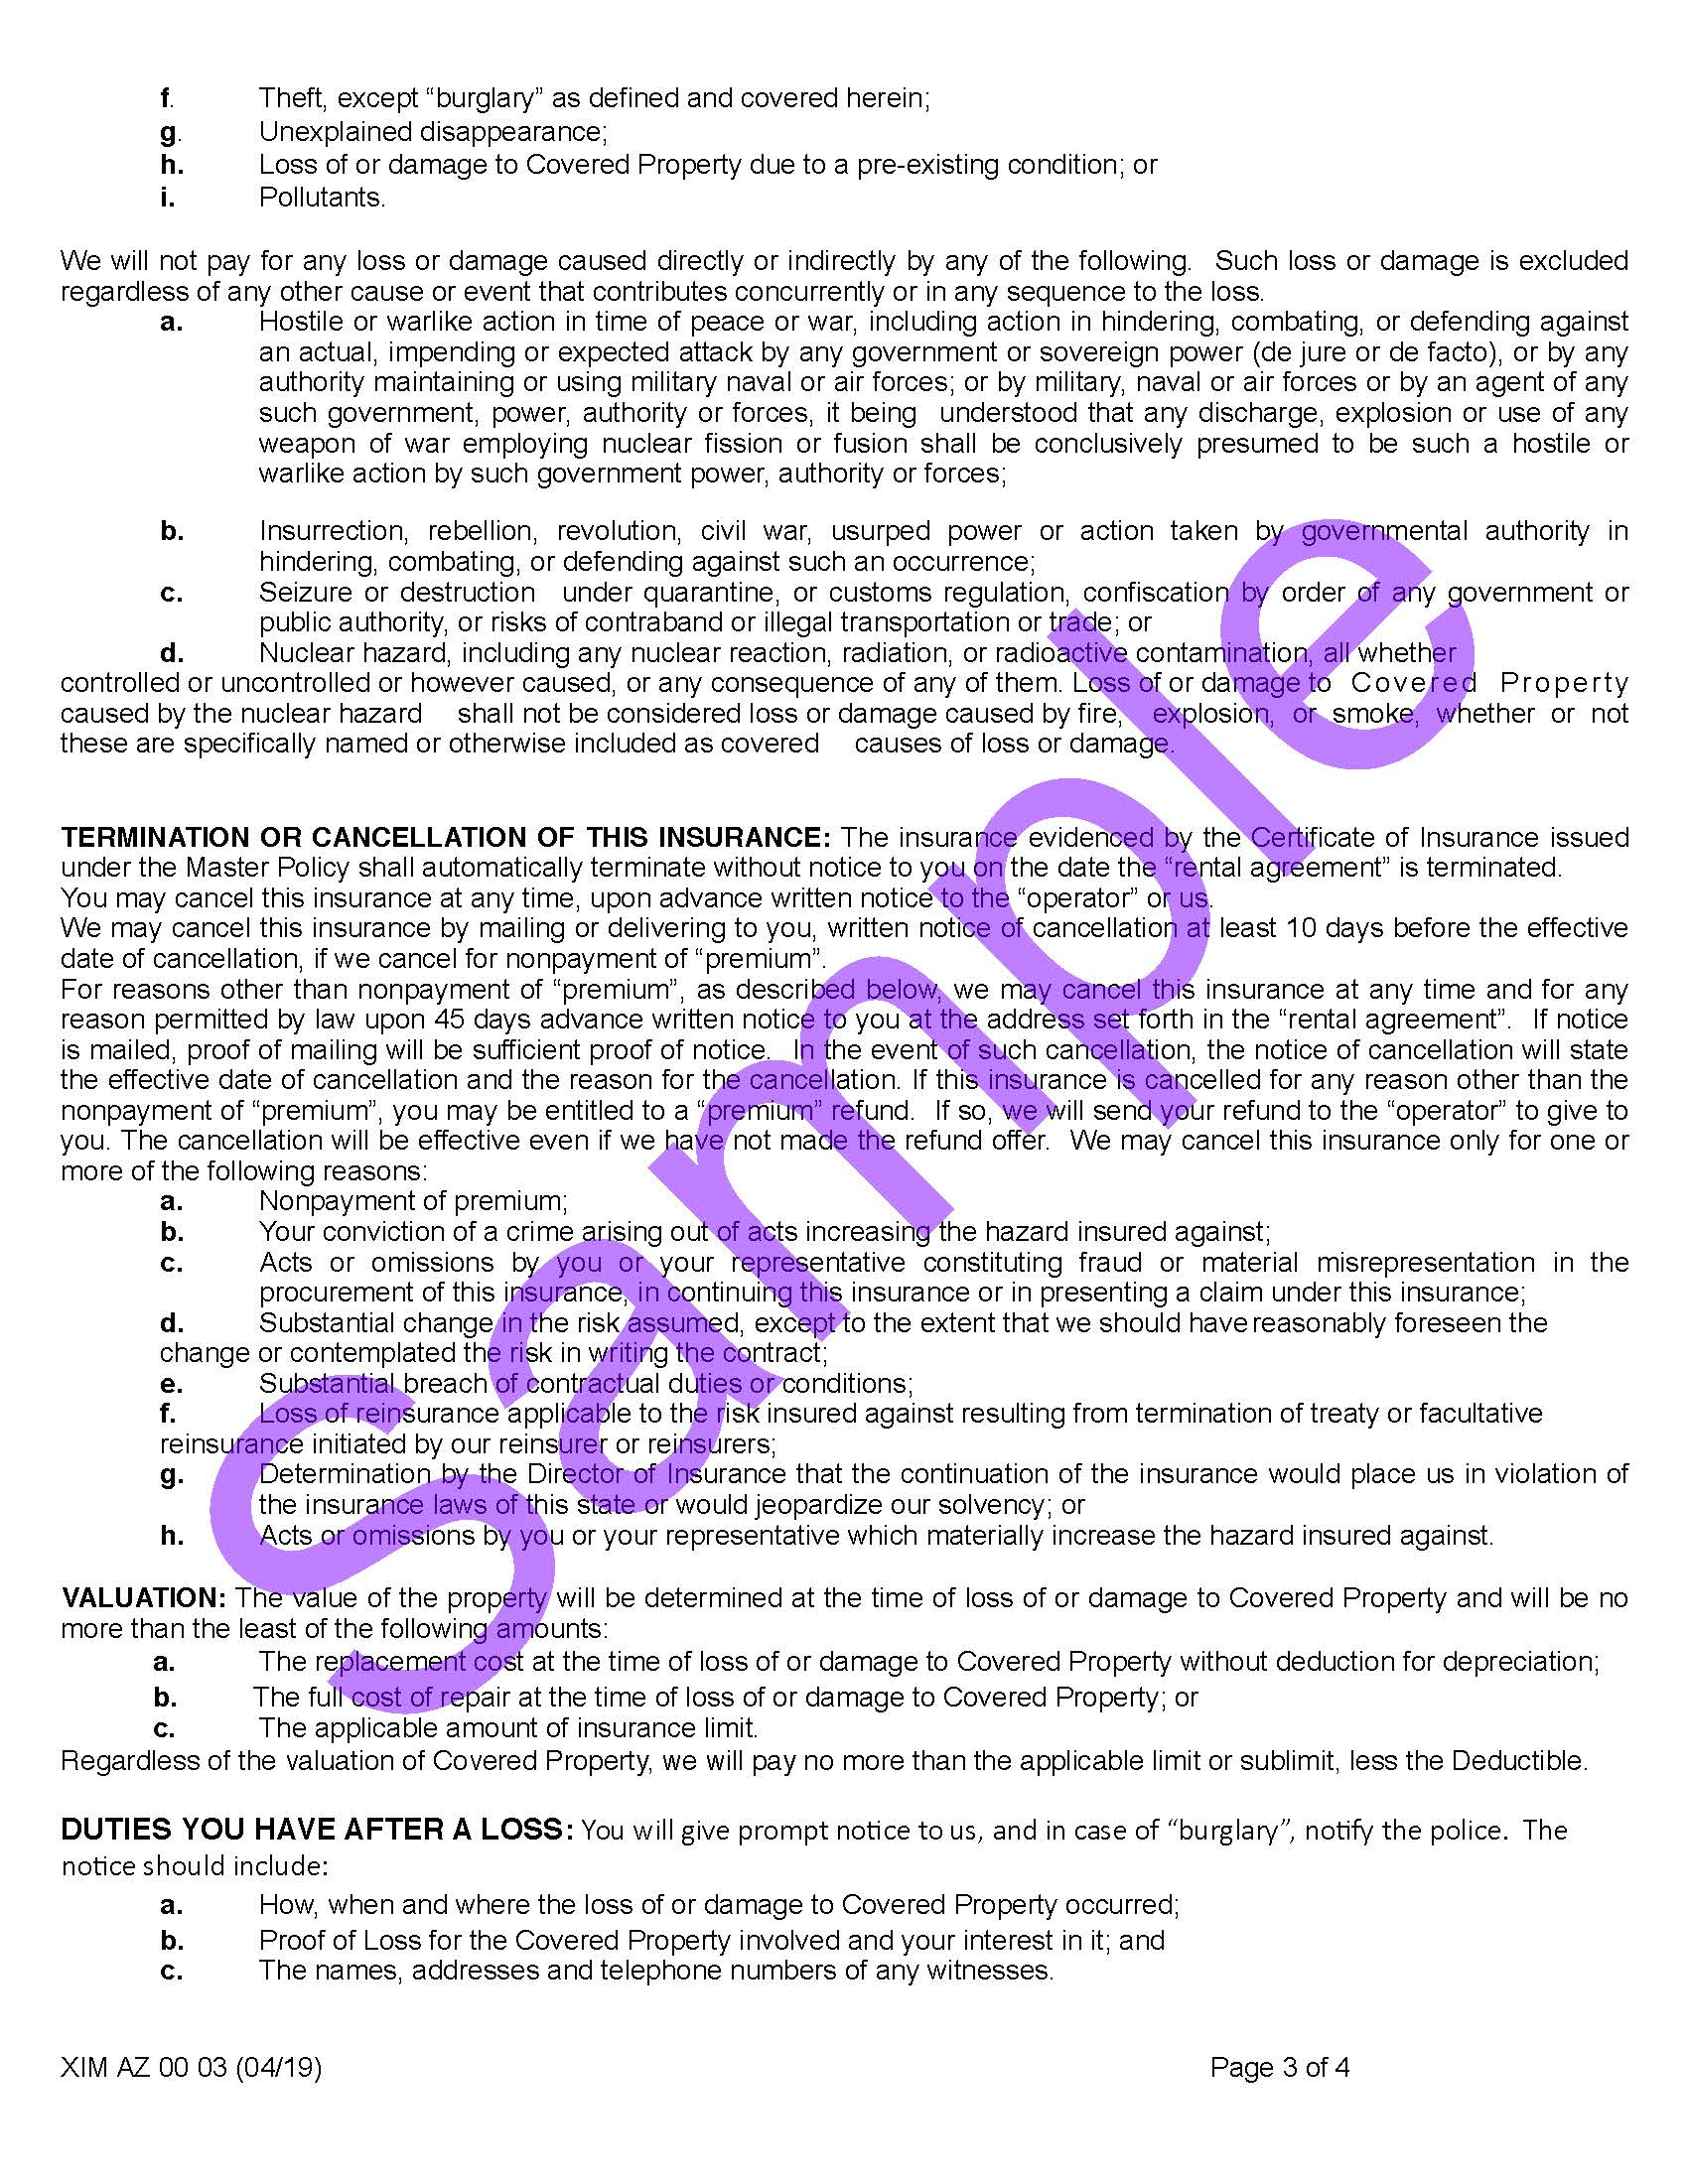 XIM AZ 00 03 04 19 Arizona Certificate of Insurance_Page_3.jpg